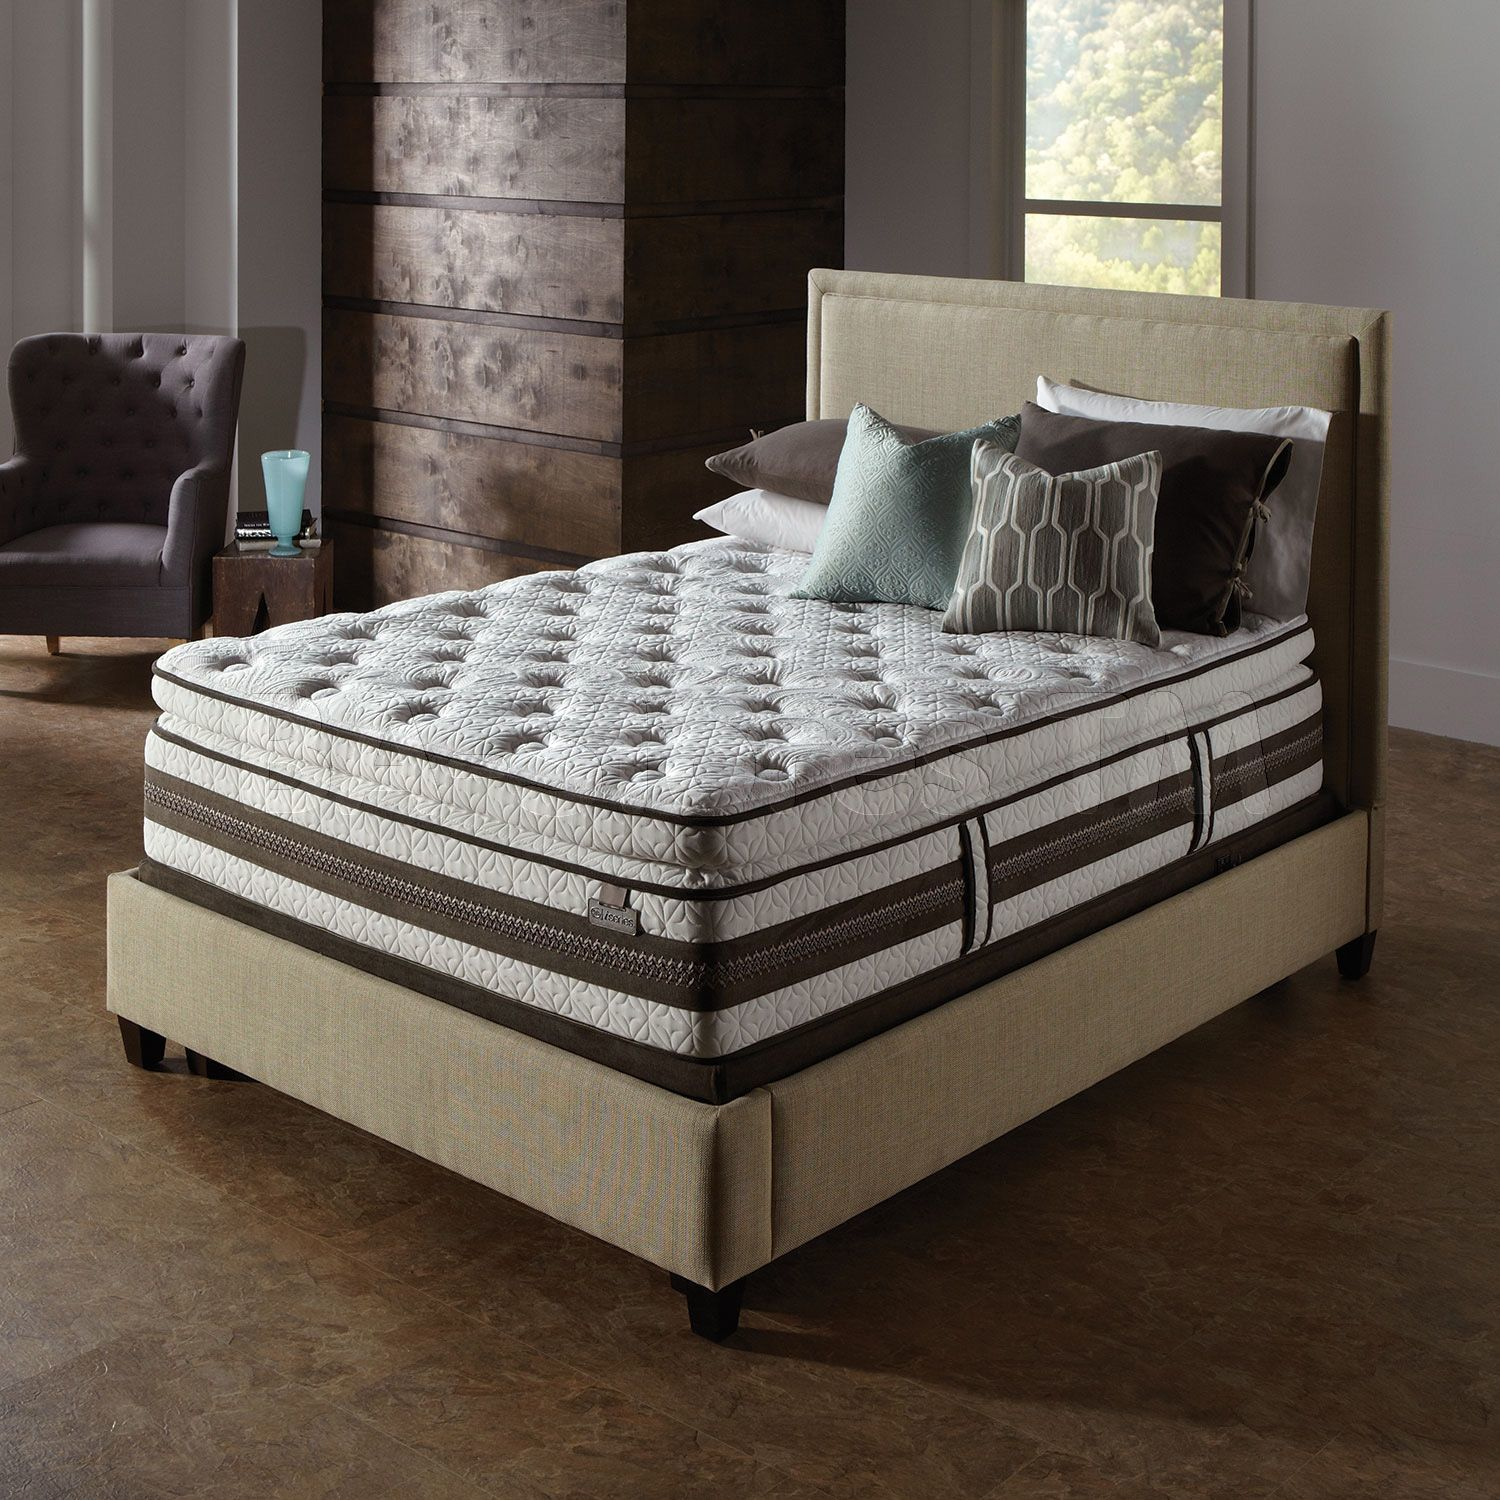 Cozy Full Size Pillow Top Mattress